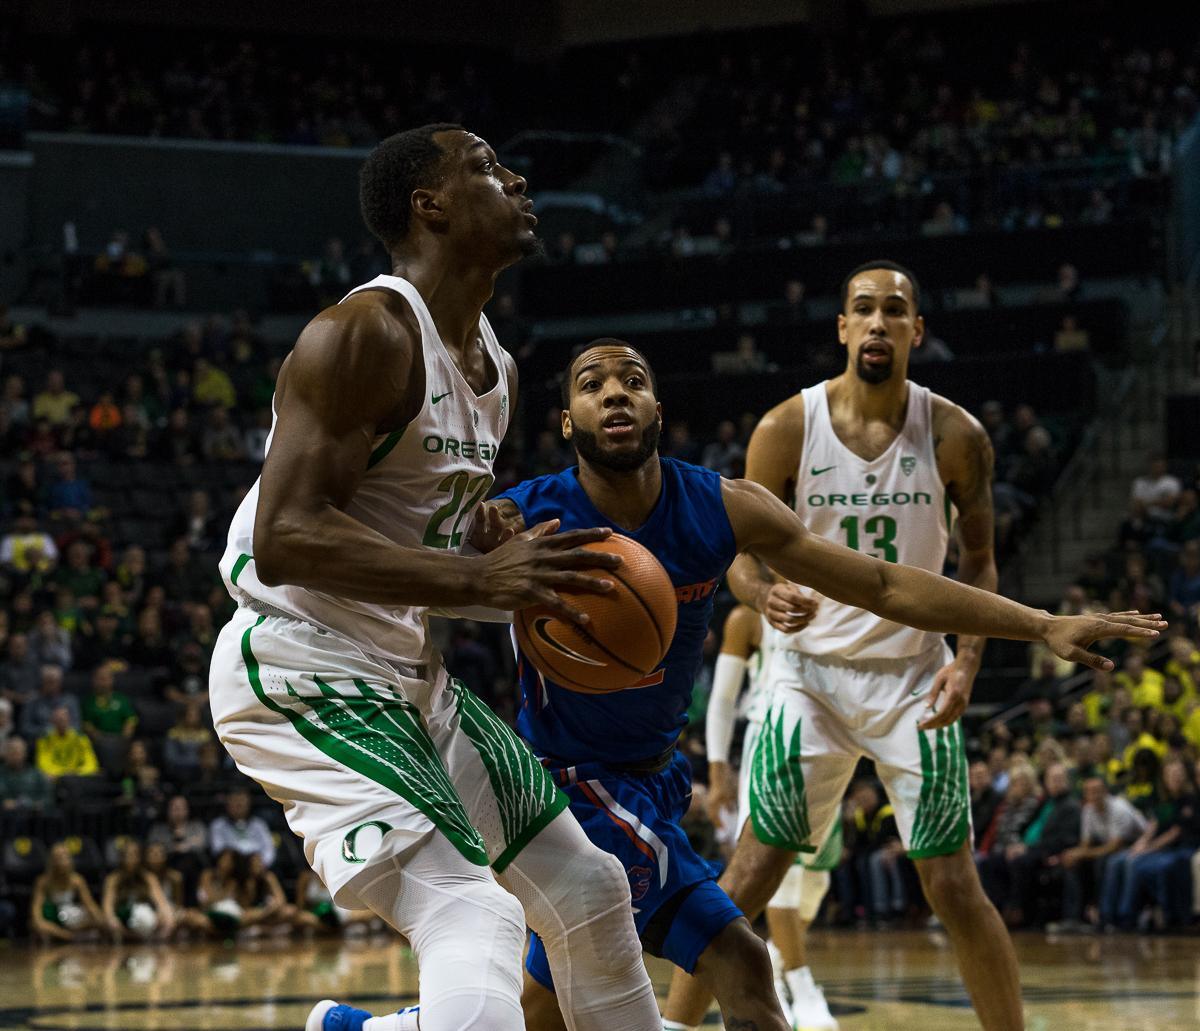 University of Oregon player MiKyle McIntosh (#22) prepares to shoot as Boise State's Lexus Williams (#2) tries to block in time. The Boise State Broncos defeated the University of Oregon Ducks 73 – 70 at Matthew Knight Arena in Eugene, Ore., on December 1, 2017. Photo by Kit MacAvoy, Oregon News Lab